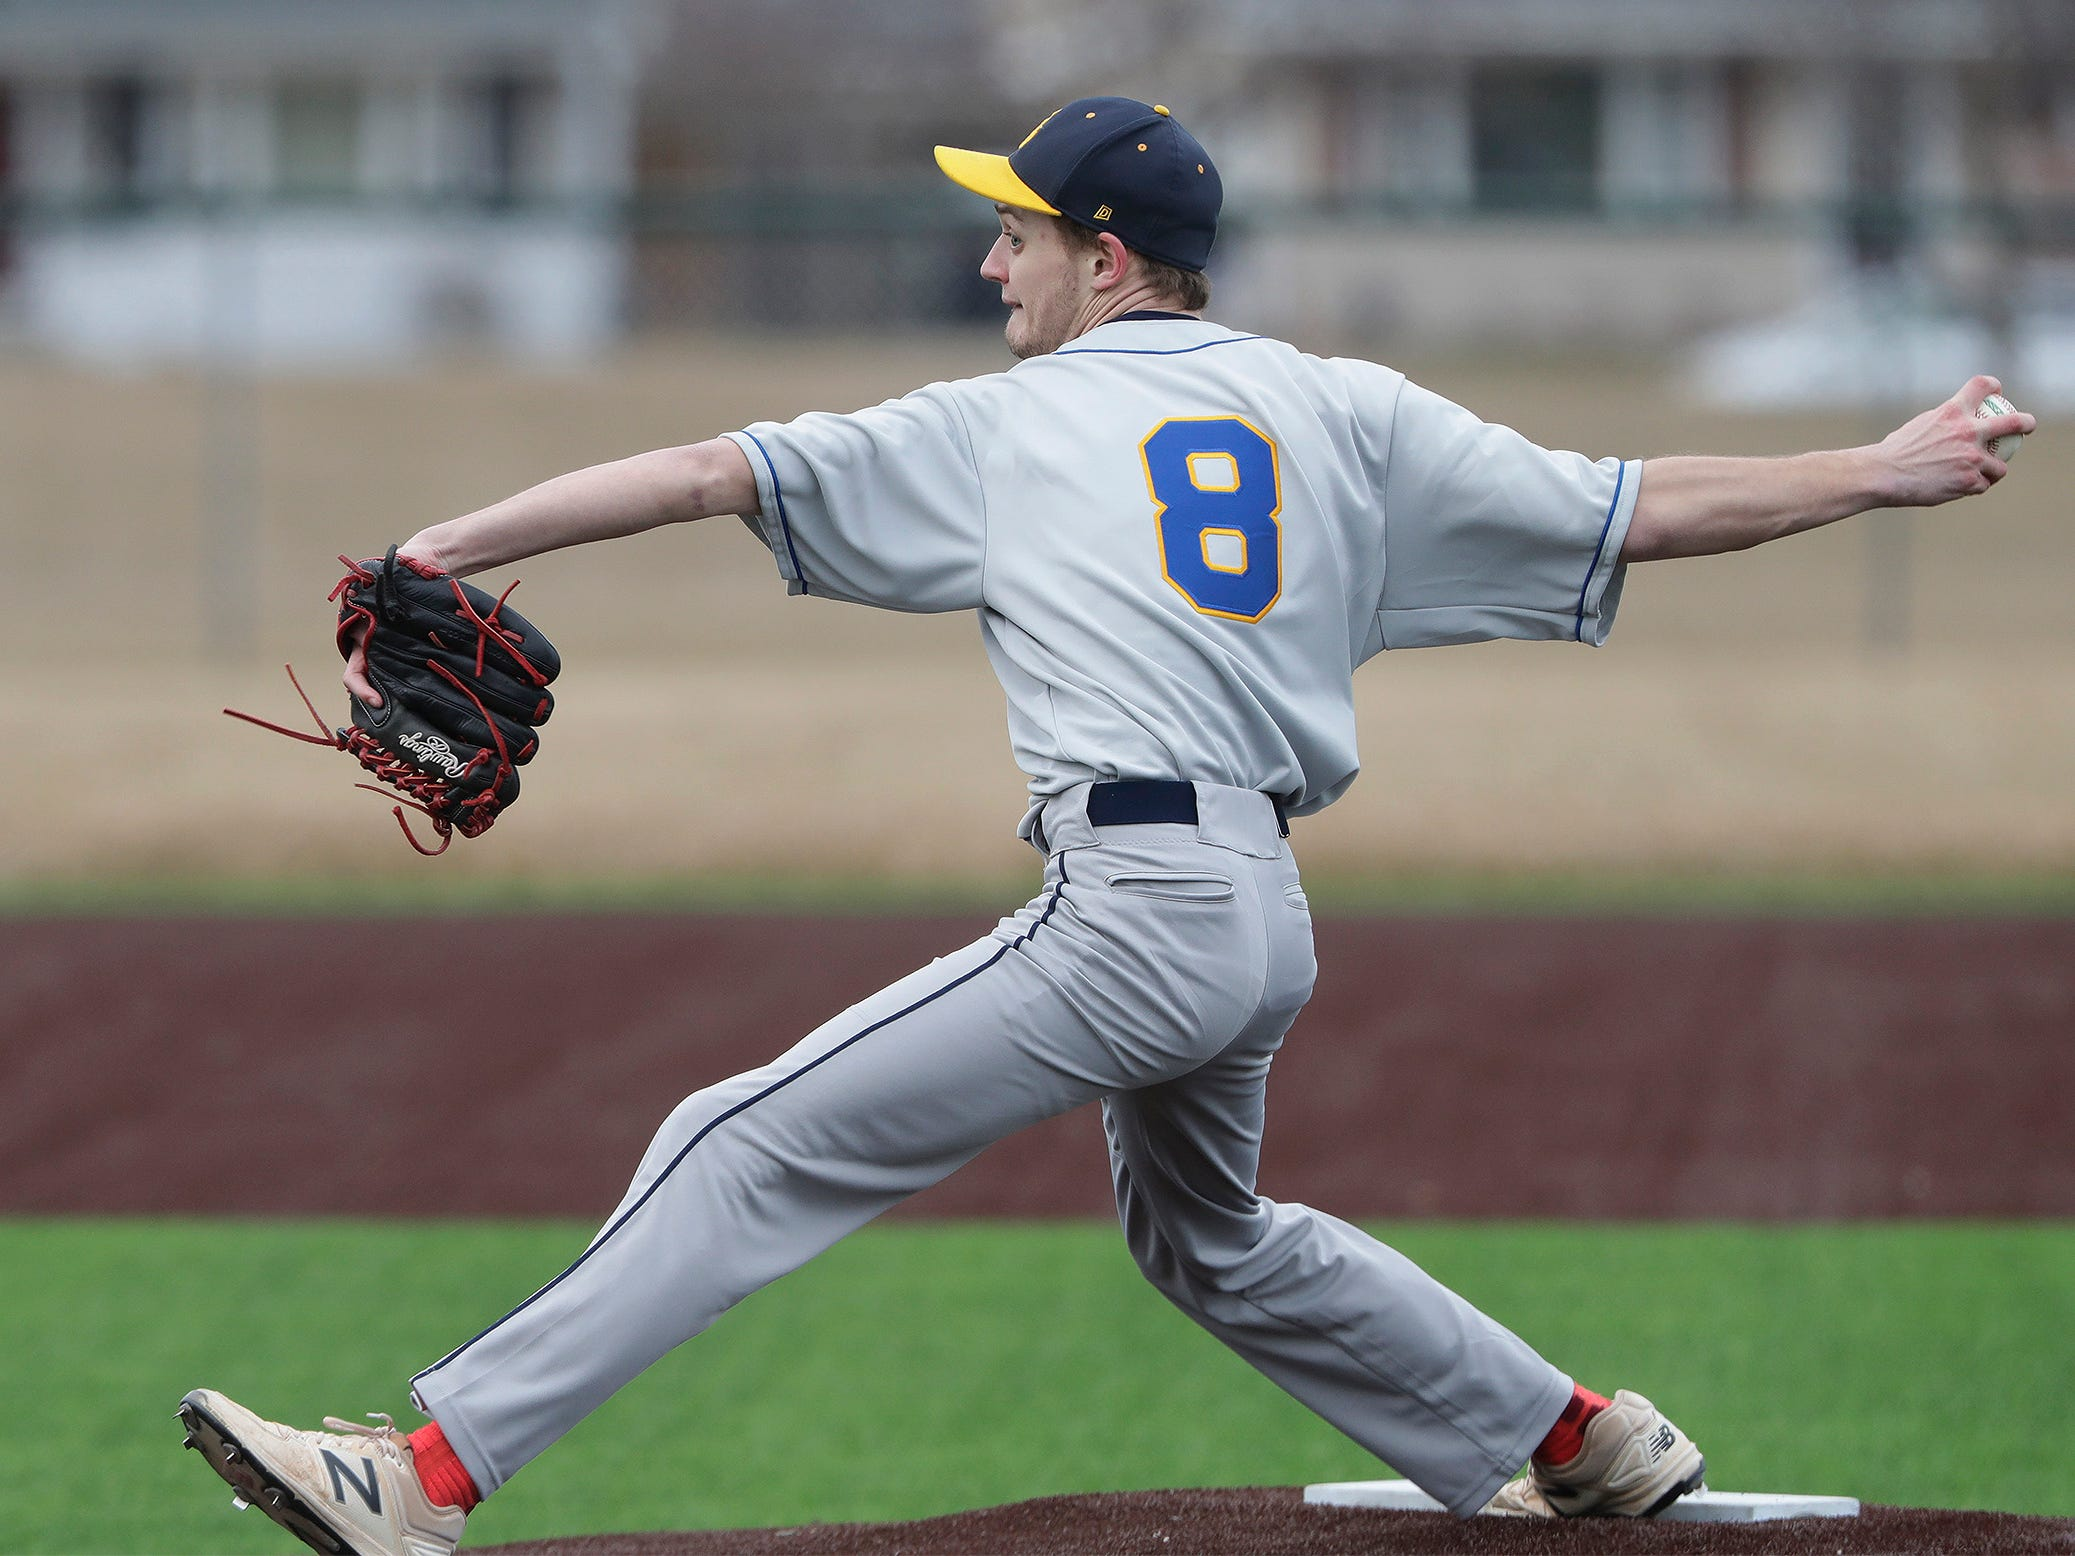 Sheboygan North's Ethan Scherg (8) winds up a pitch against Ashwaubenon, Thursday, April 4, 2019, in Sheboygan, Wis.